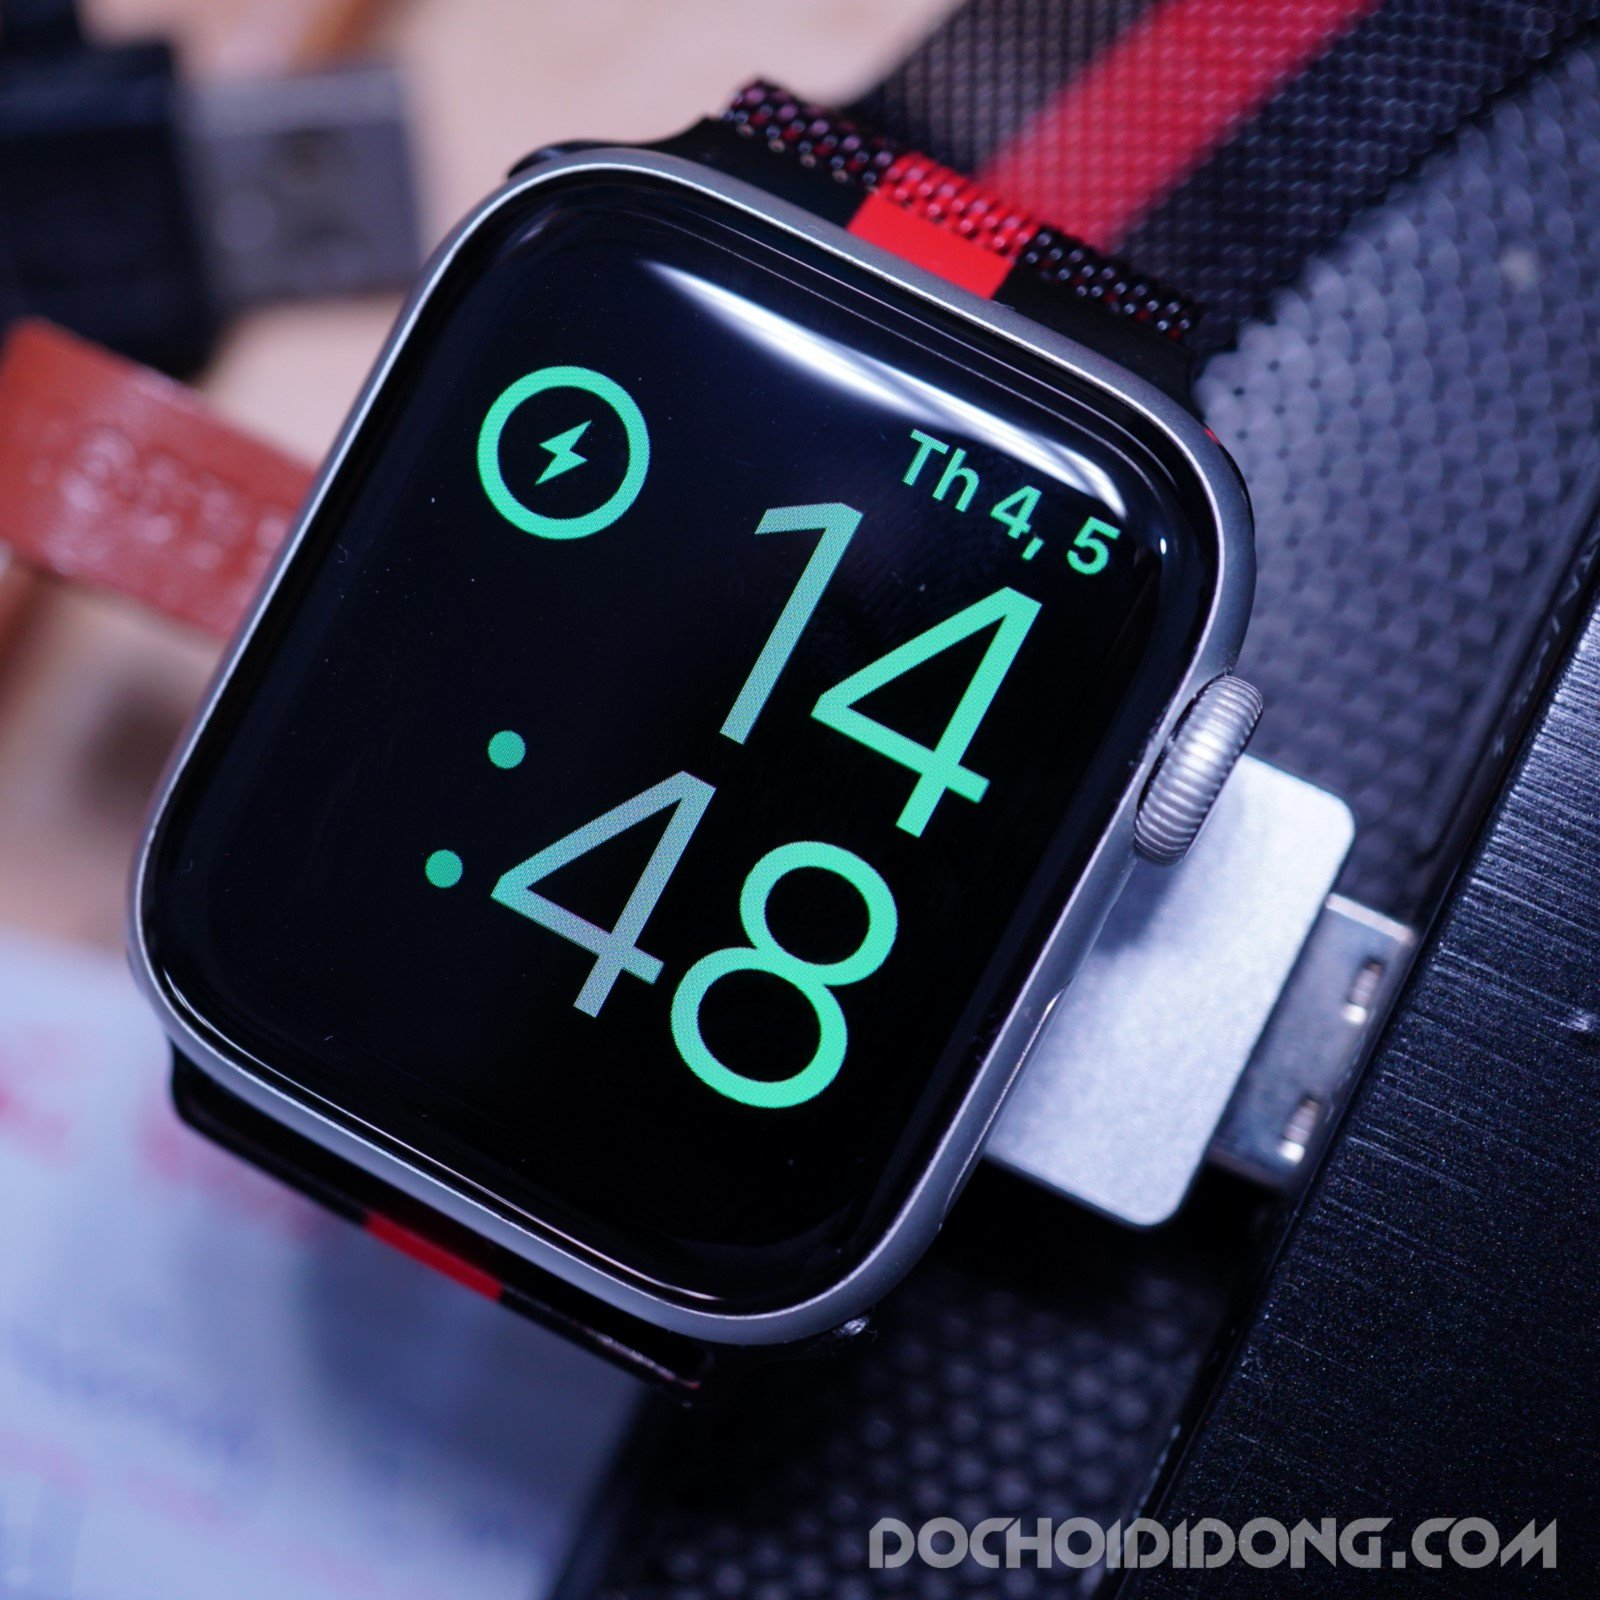 de-sac-apple-watch-baseus-moc-khoa-sieu-gon